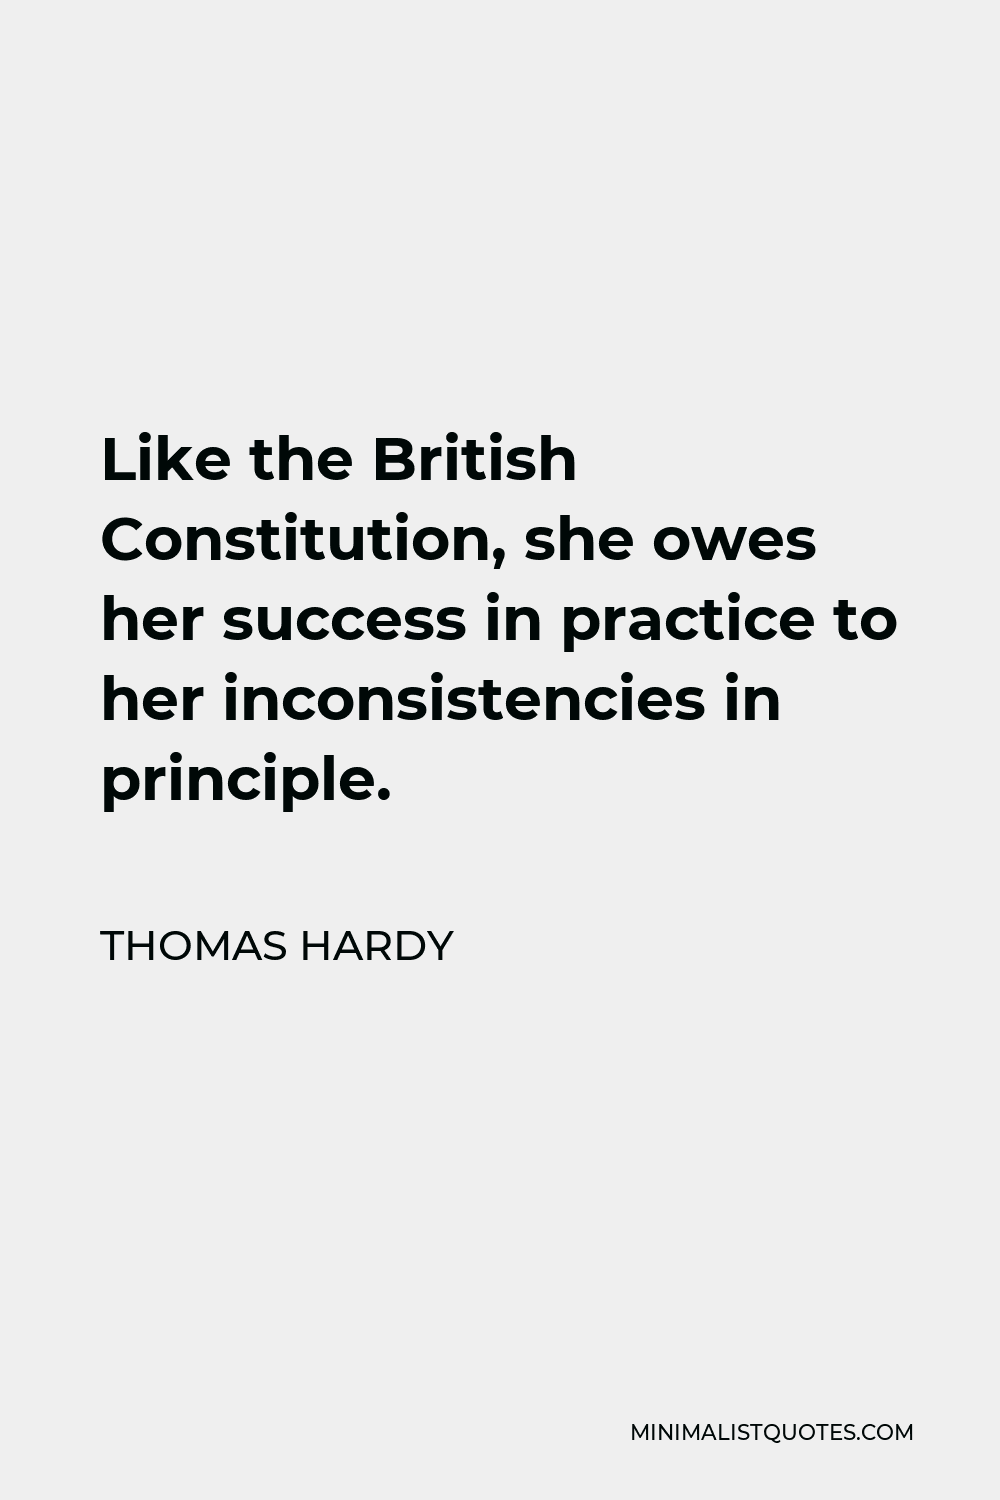 Thomas Hardy Quote - Like the British Constitution, she owes her success in practice to her inconsistencies in principle.